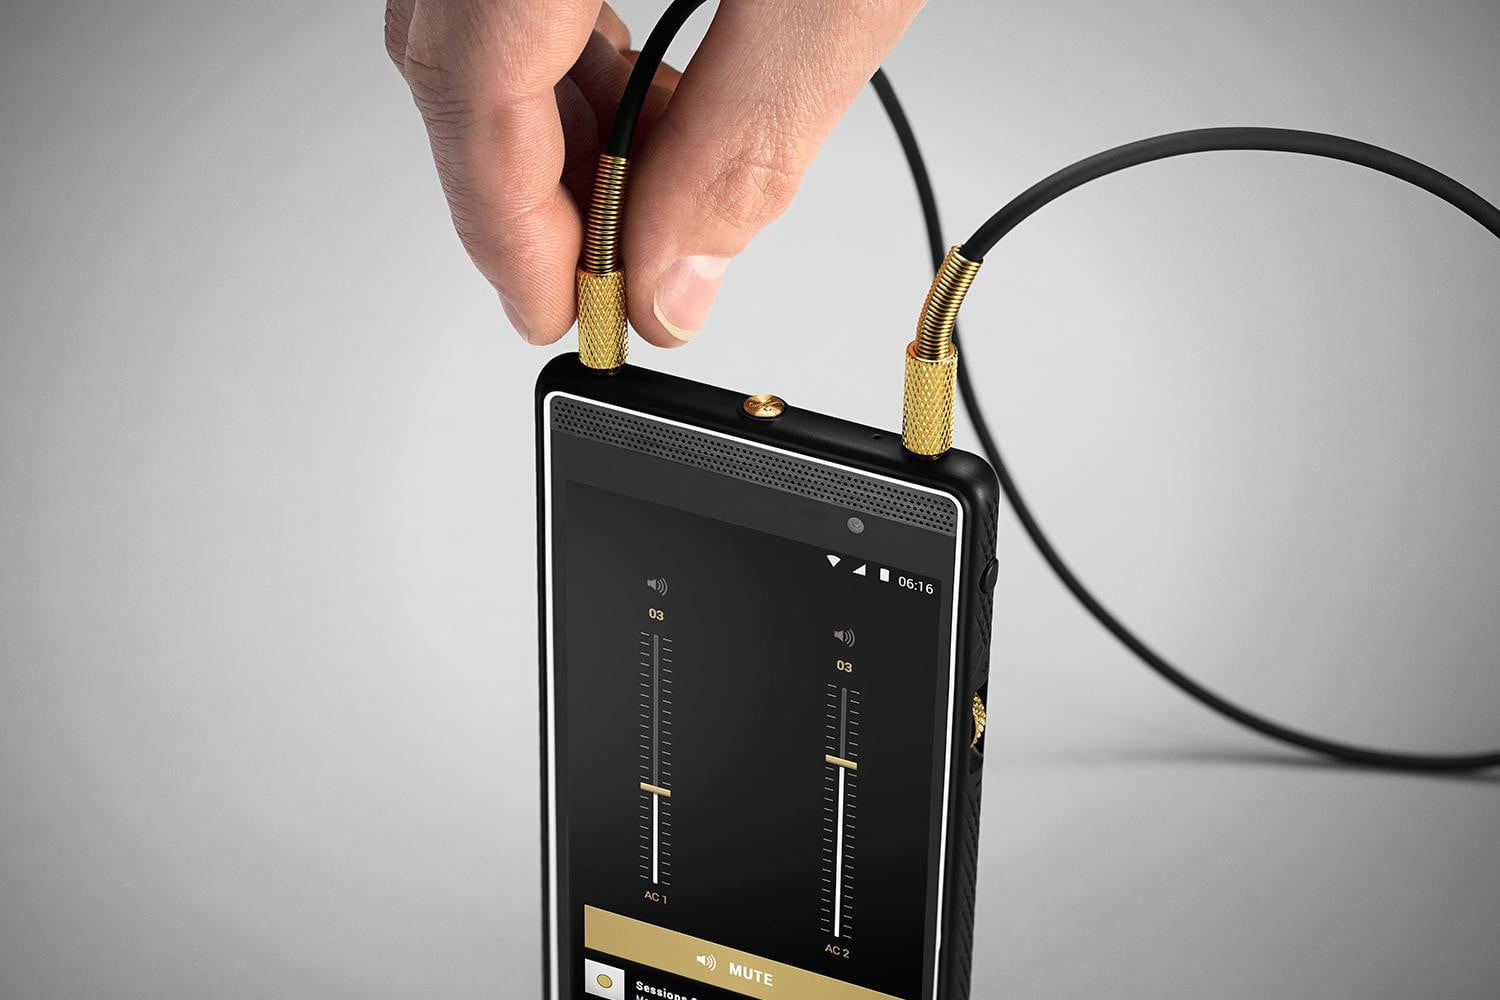 Marshall Announces the London, a Music-Focused Android ...